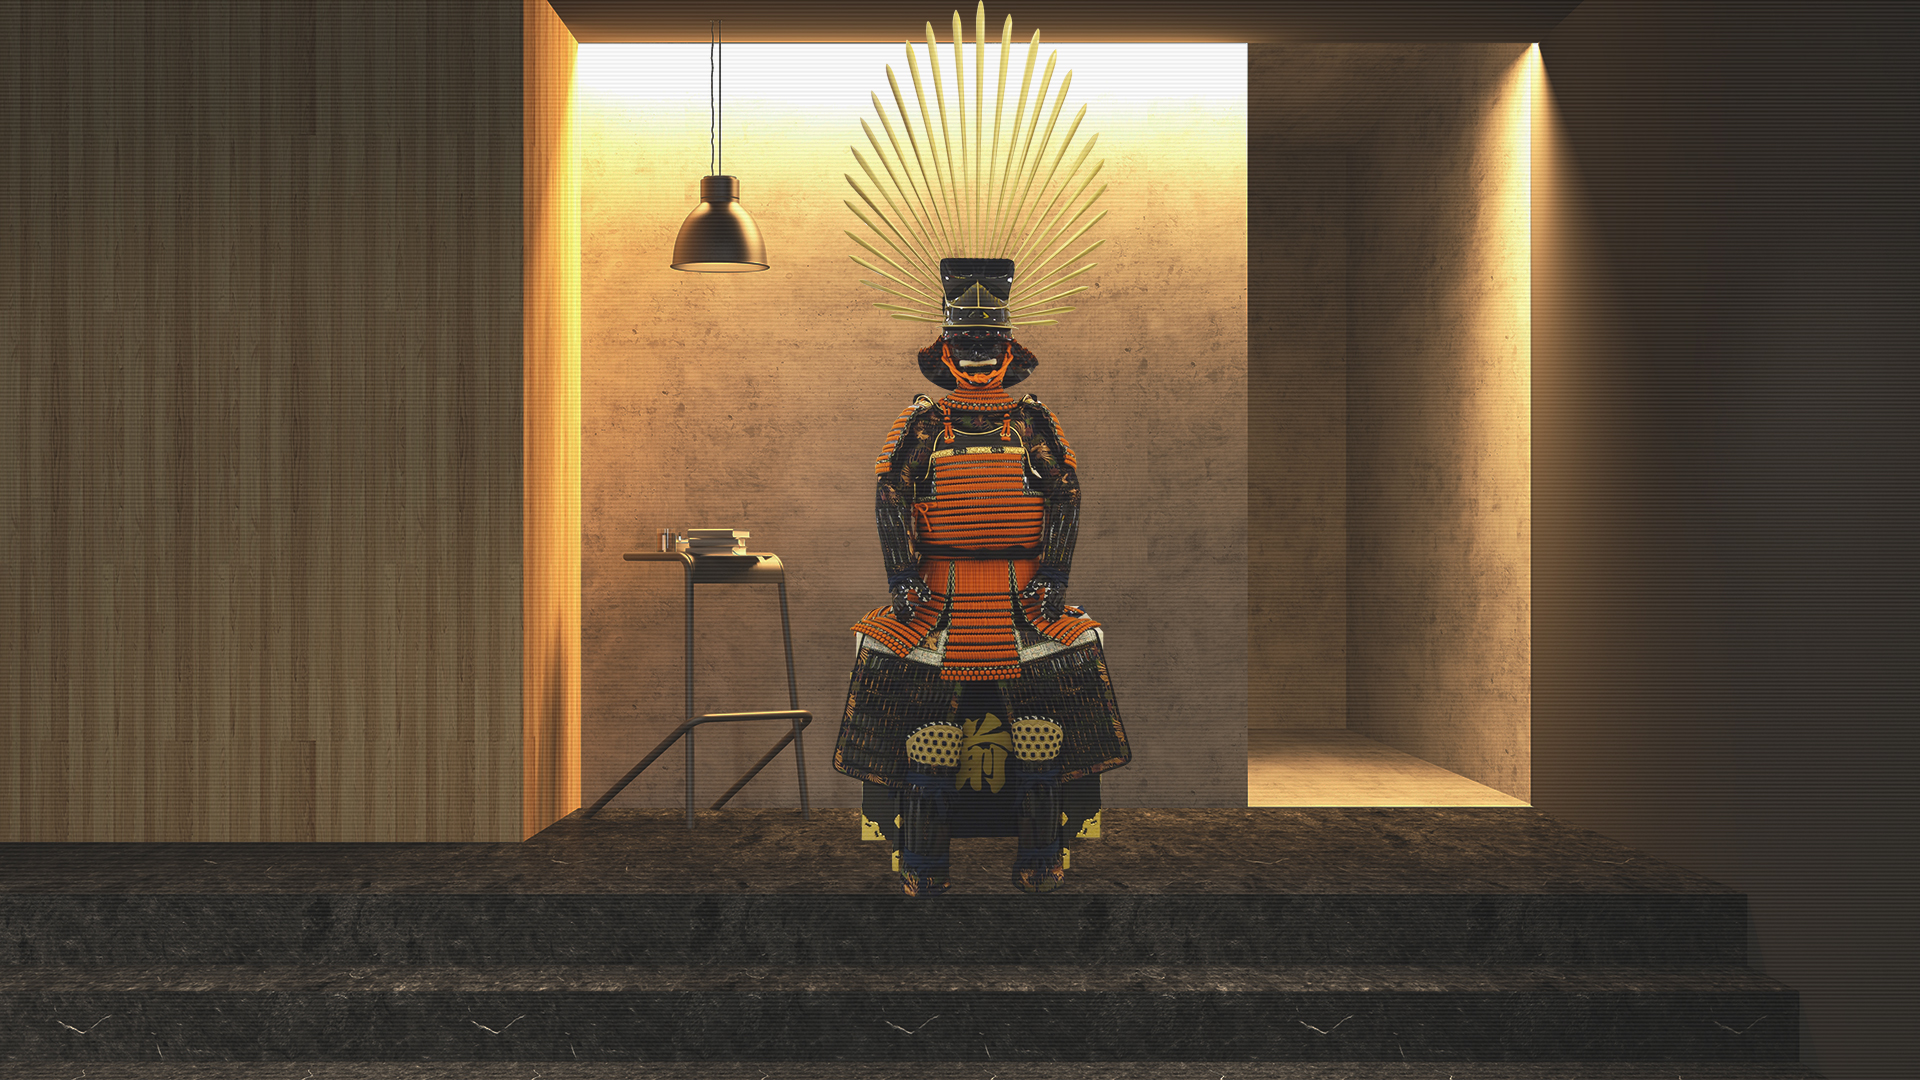 WA05 Reproduction of Toyotomi Hideyoshi's Armor